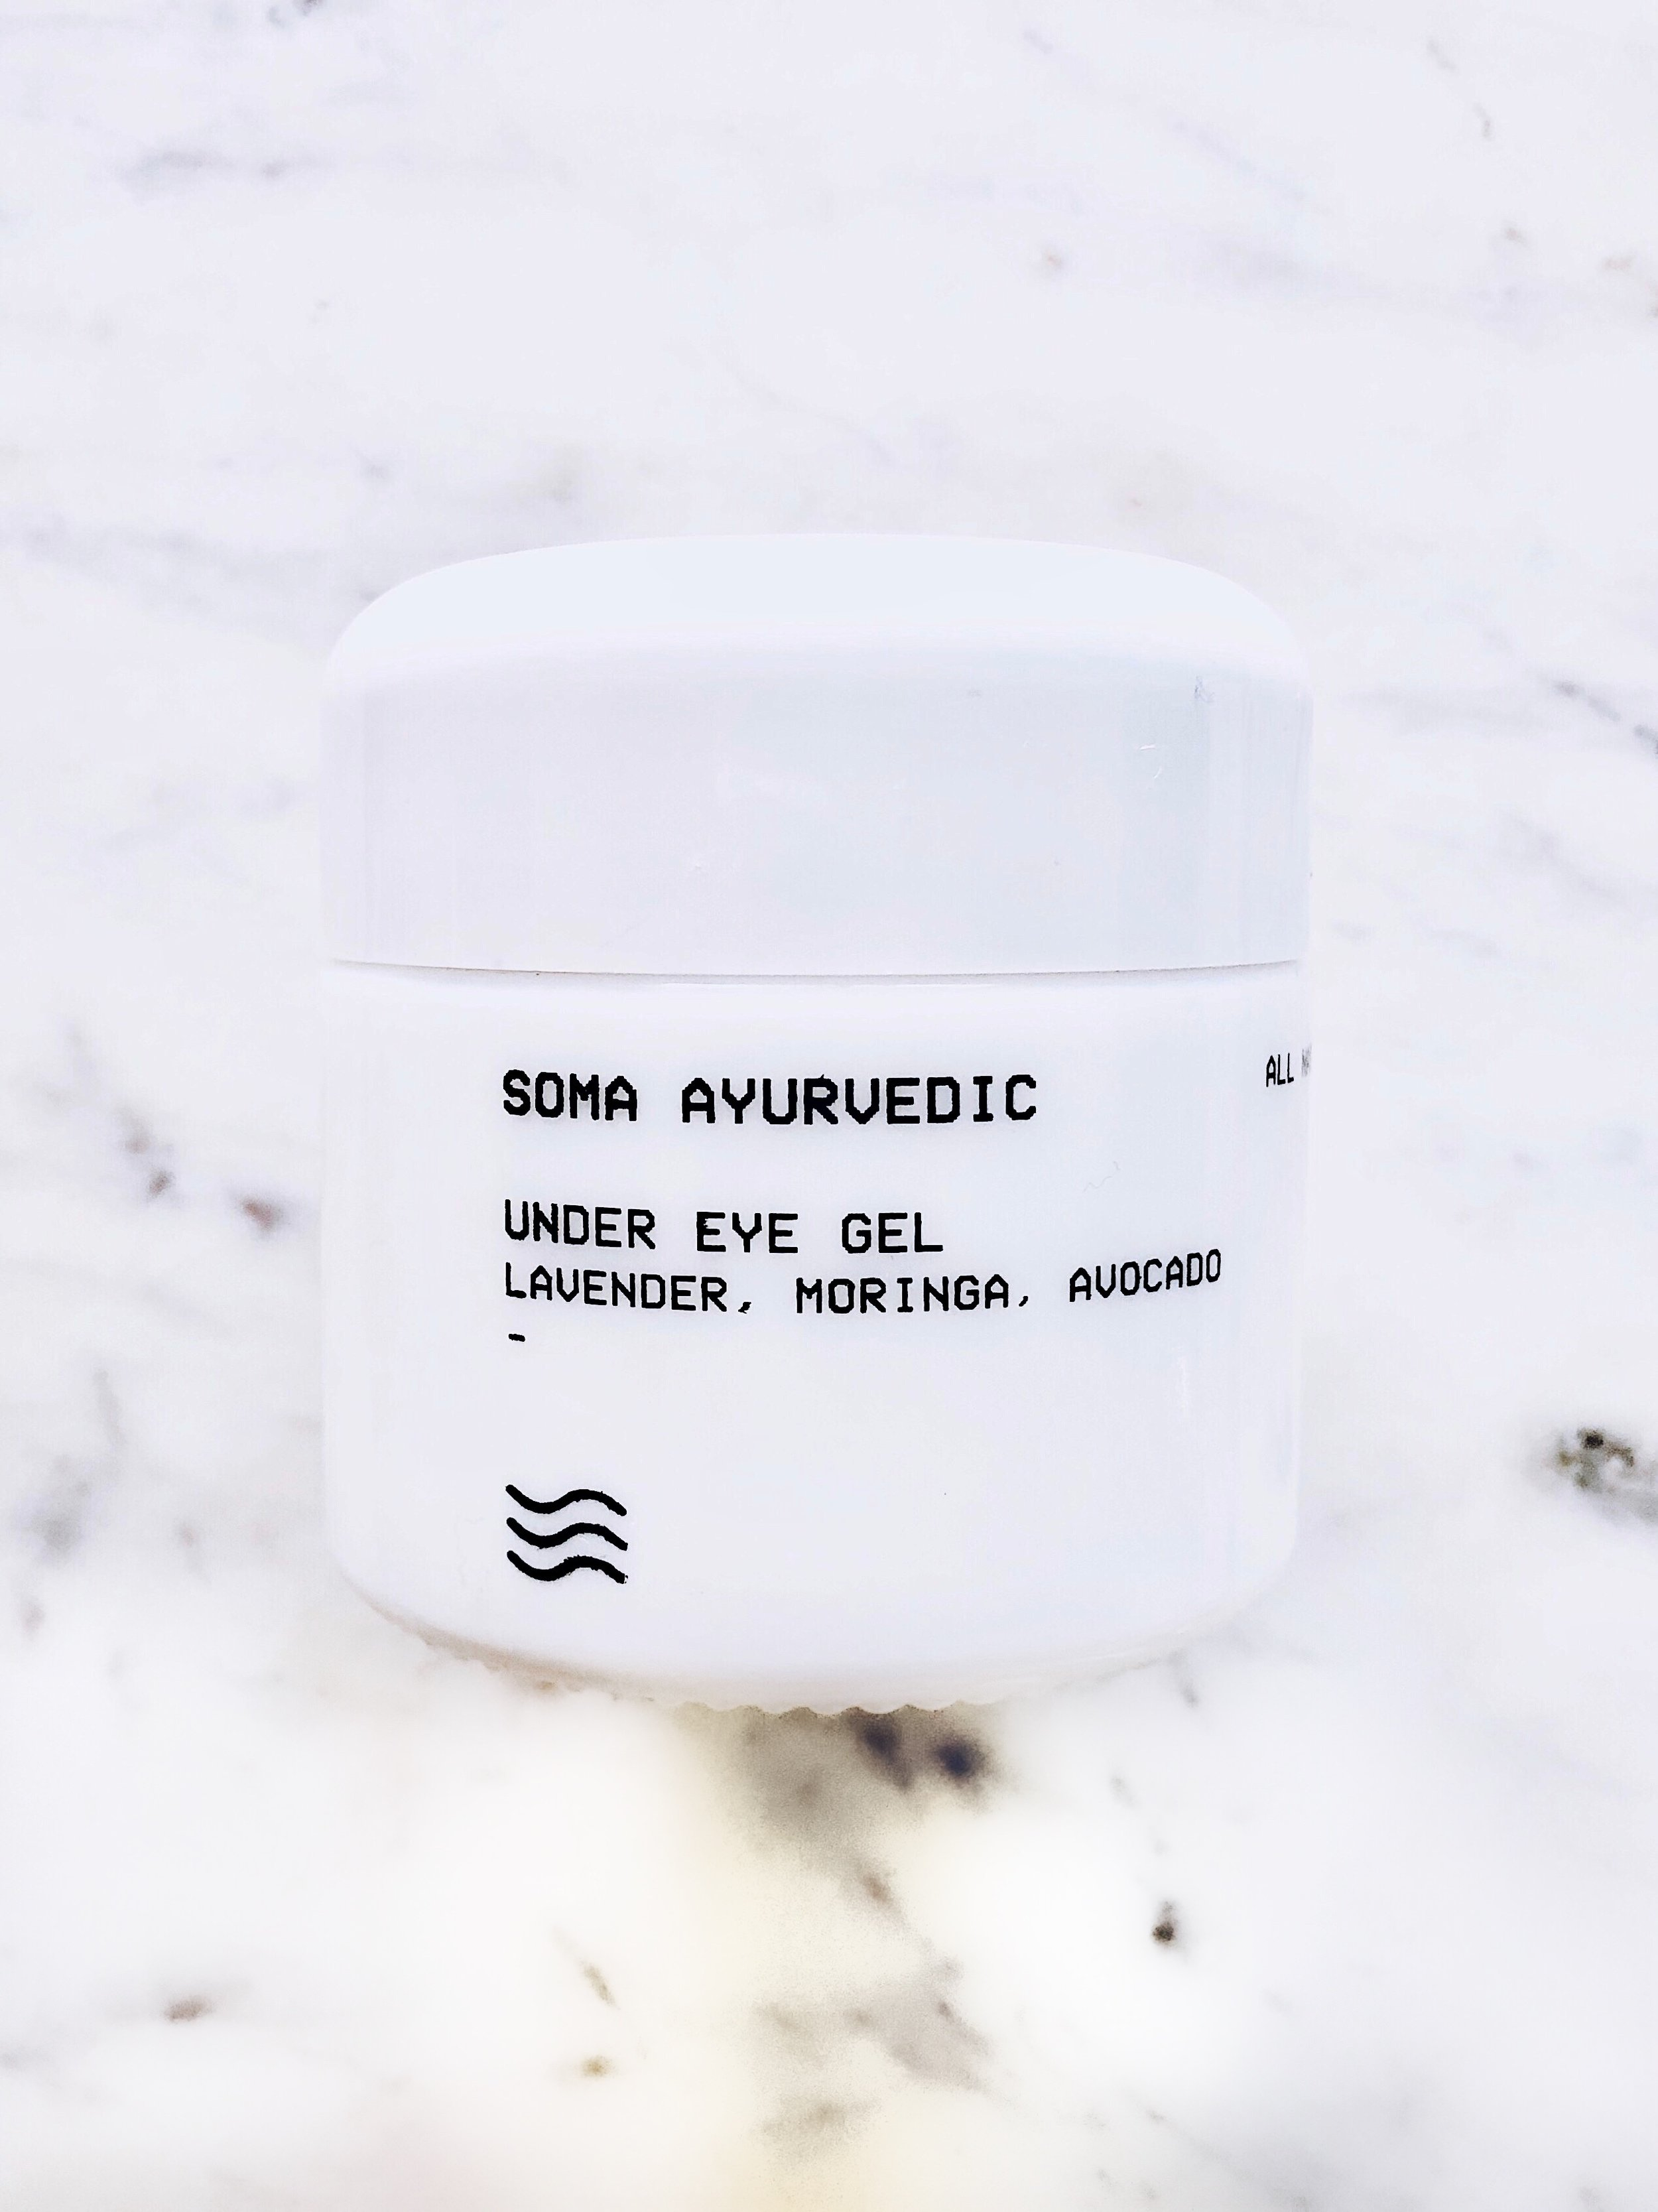 Soma Ayurvedic Under Eye Gel- $98.00: - Here's the quick SCORECARD breakdown. Each question is rated on a scale of 1 to 5, 5being the best:1. How do the ingredients look? What's inside?- There's one iffy ingredient- details below!2. How's the application? Let's talk texture.- 4: It's a nice gel-like texture. I could feel it cooling and tightening upon application. Quick tip: it doesn't work well under makeup, or it didn't for me. I found it pilled a bit.3. How is the scent?- 4: Totally pleasant and not overwhelming.4. Is it non-irritating?- 3: It's ok. The first couple of applications I applied a bit more than needed and my skin wasn't super happy with that. Less is more here.5. Performance: does it do what it promises to do?- 2: I saw minimal change in wrinkles, circles, bags, etc.6. Is this a consciously-created product? 5- 100% yes! Vegan, cruelty-free, and so much more. The mission behind the brand is commendable and the packaging is both thoughtful and sustainable.7. Would I buy it again? 2- Unfortunately, no. I need to have seen better results to invest in this eye gel. I'm just not sold on eye creams having significant impact, yet. If I find one that performs, I'll shout it from the rooftops! I think they're best as lightweight, preventative moisture, and I have better, less-expensive options for this.FINAL SCORE:23/30